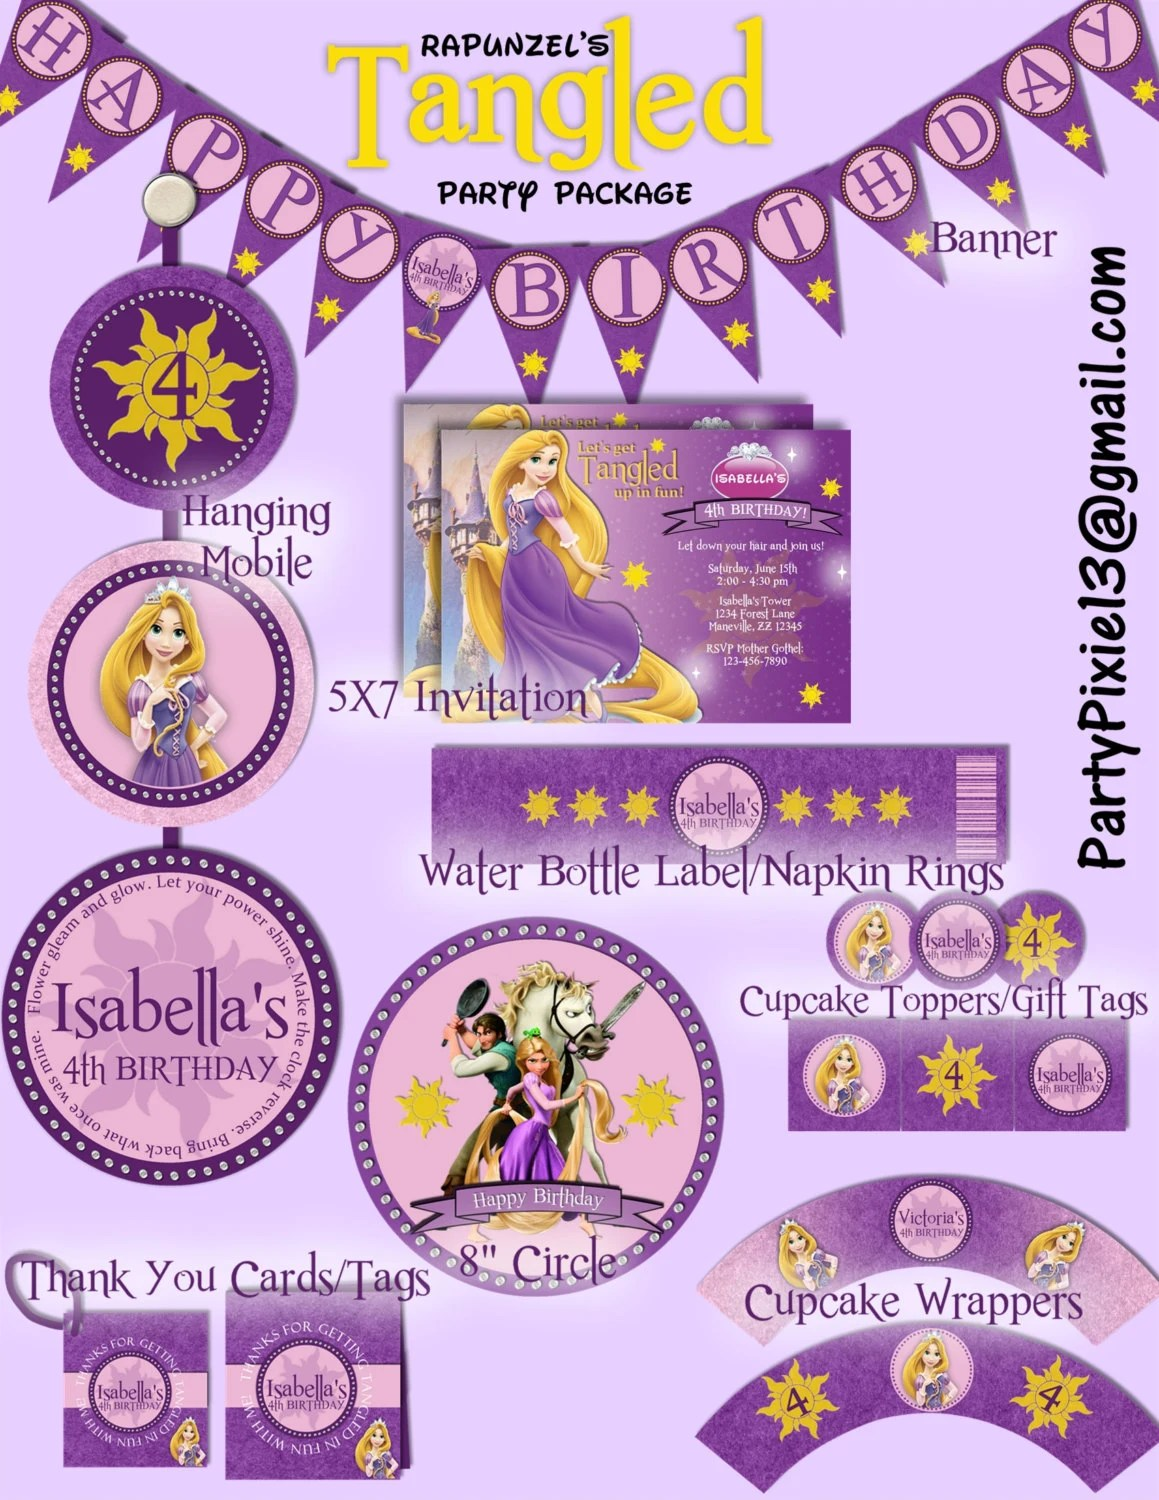 Disney Princess Rapunzel Tangled Party Package With Invitation